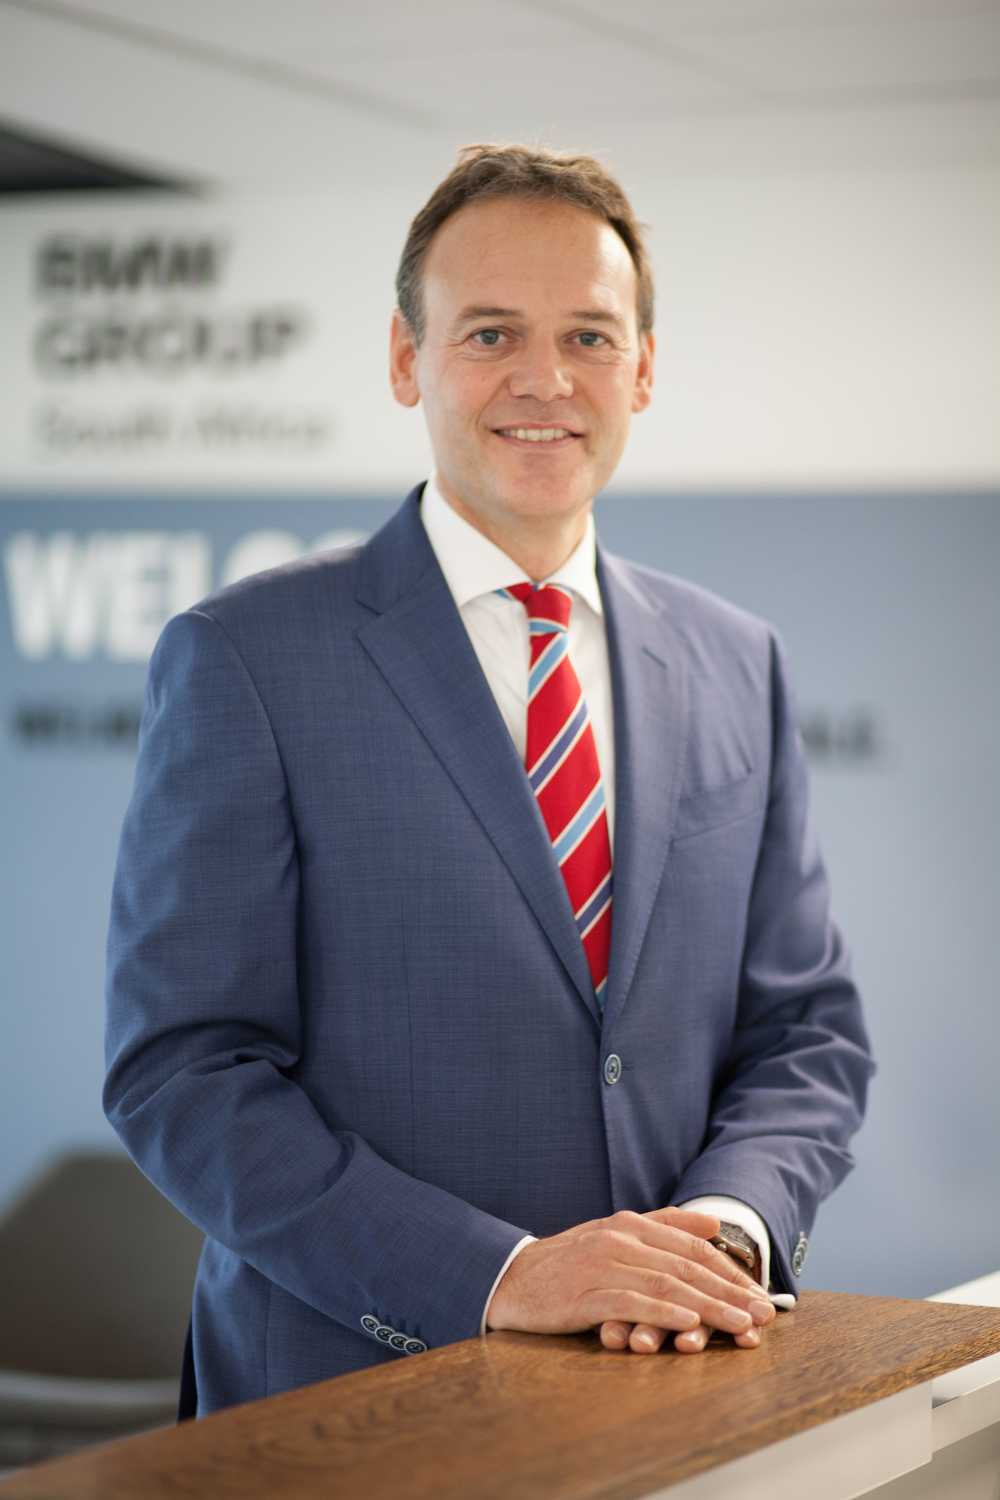 Bmw South Africa Appoints New General Manager For Group